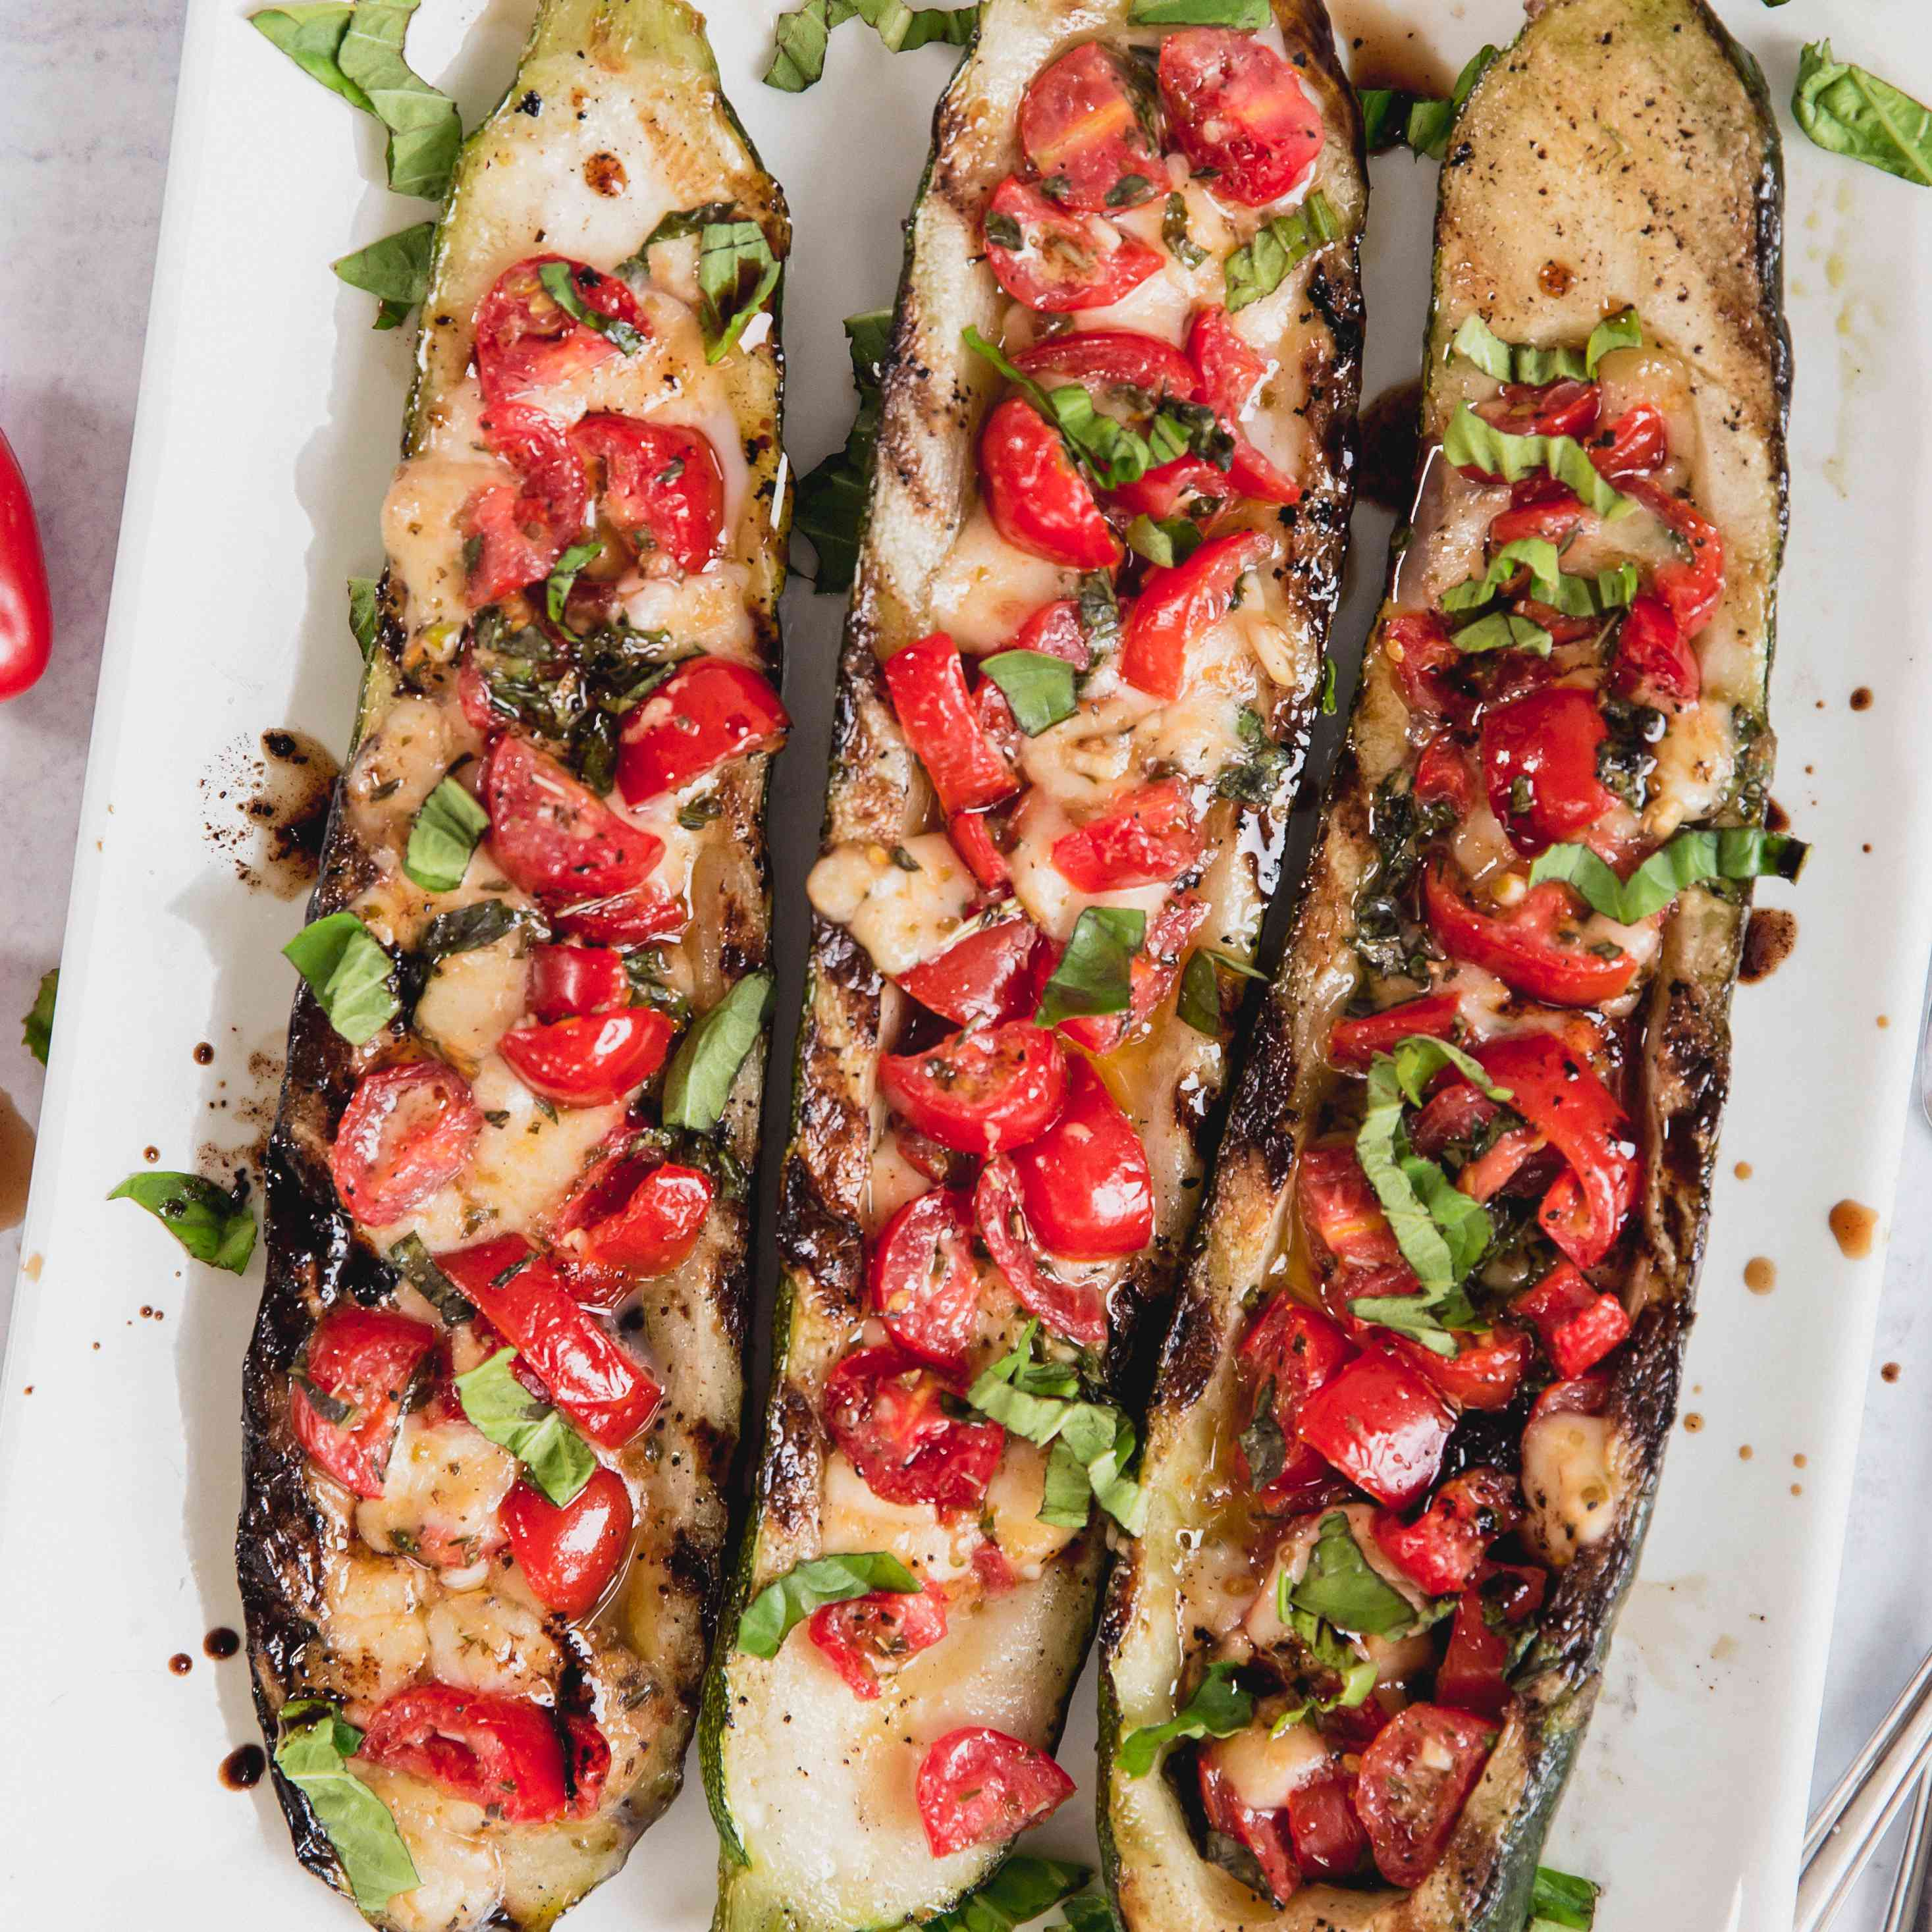 Overhead view of grilled zucchini with tomatoes, mozzarella, and basil served on a white platter.